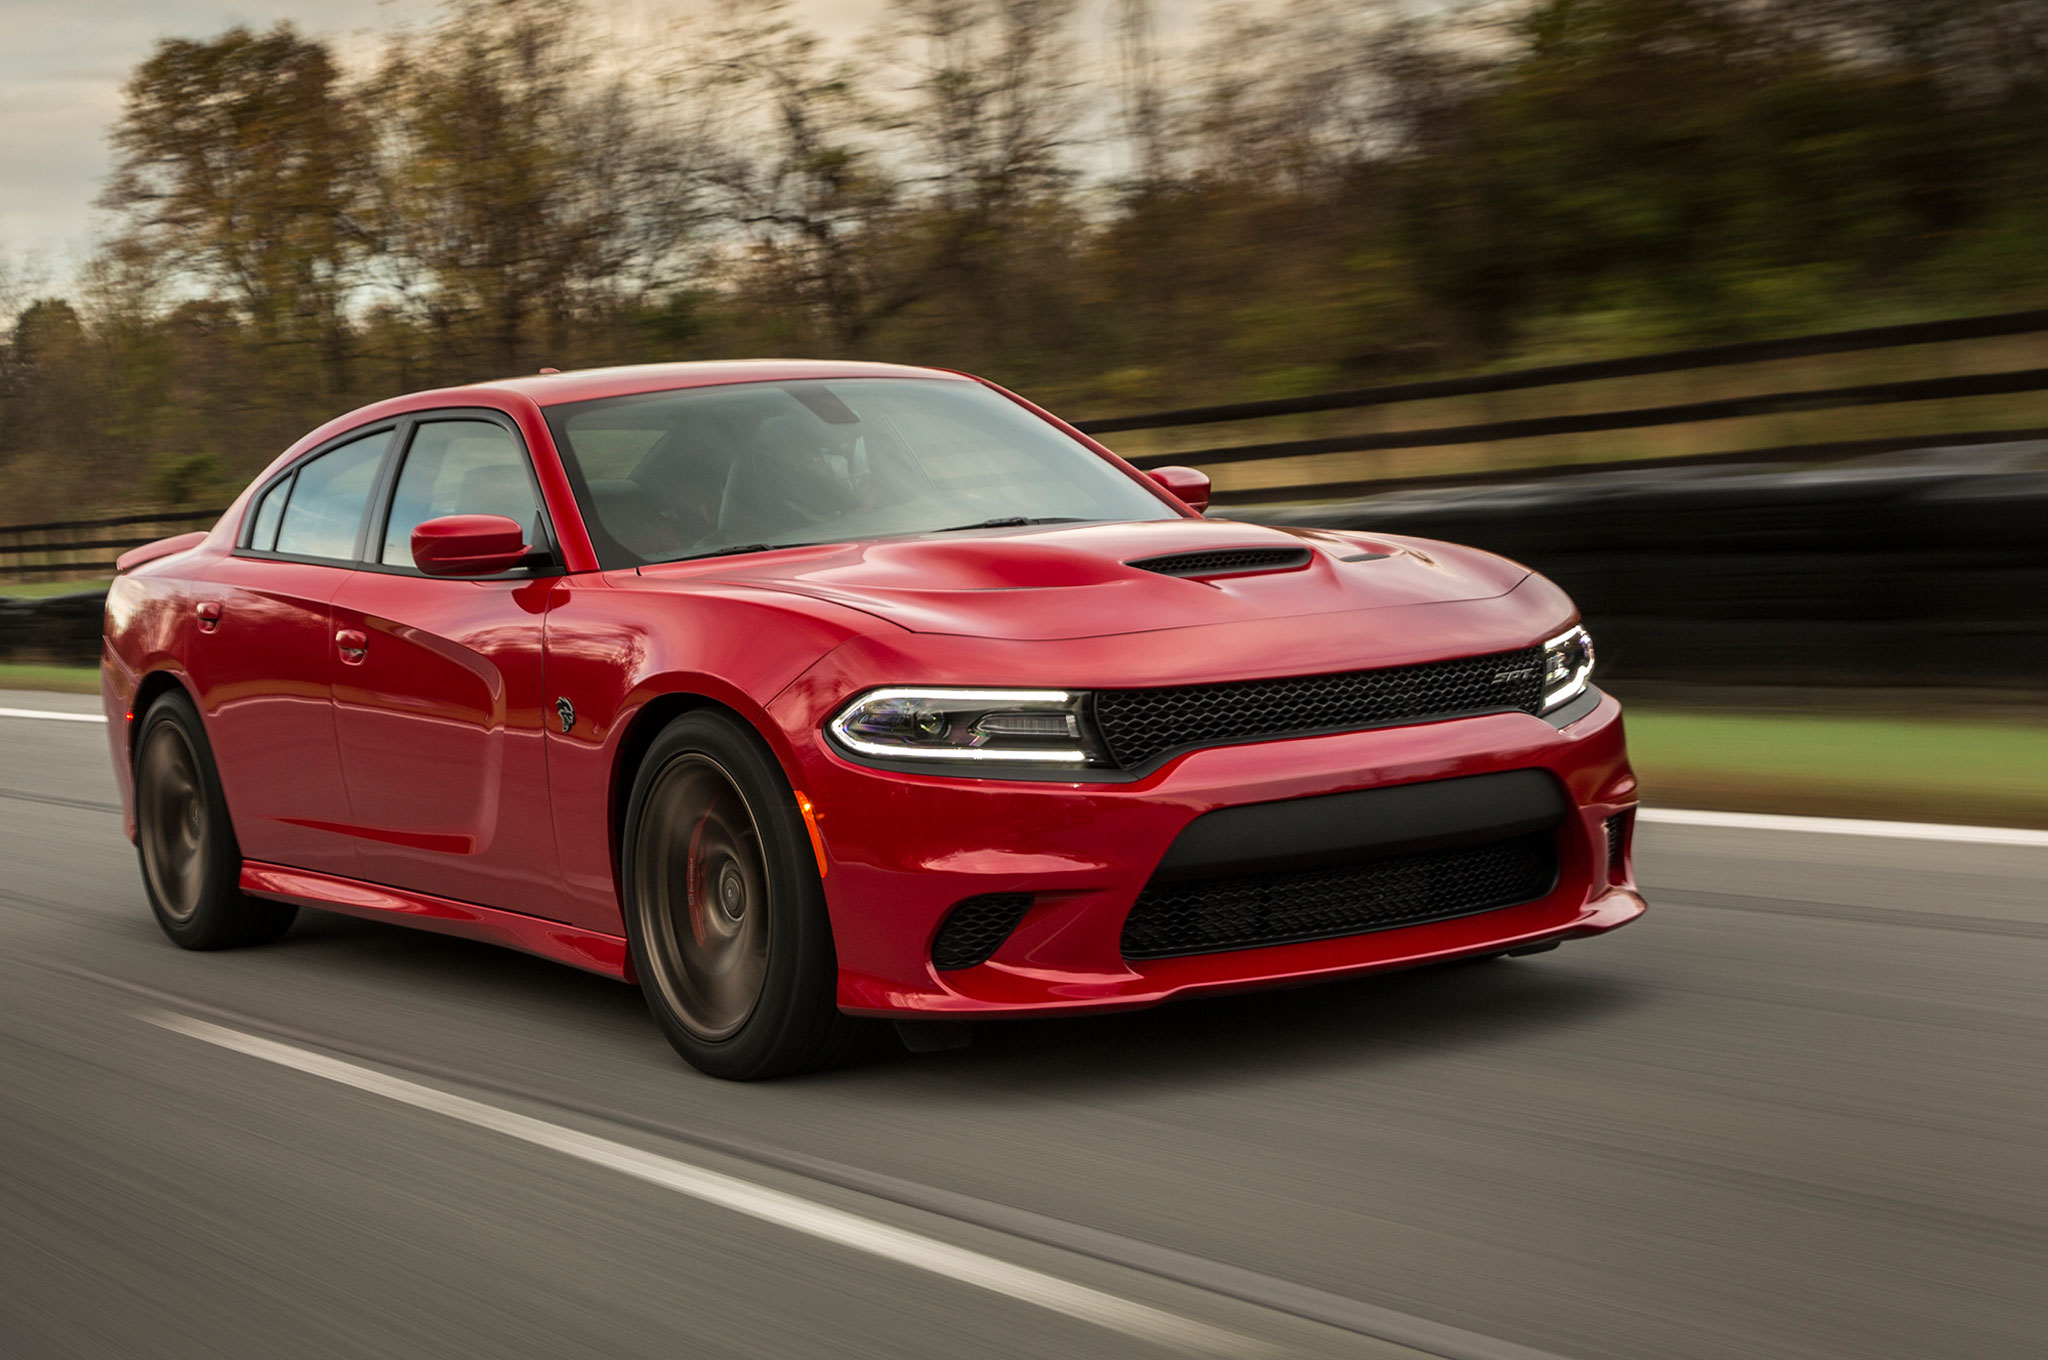 One Glorious Day With The Beastly 2015 Dodge Charger Srt Hellcat